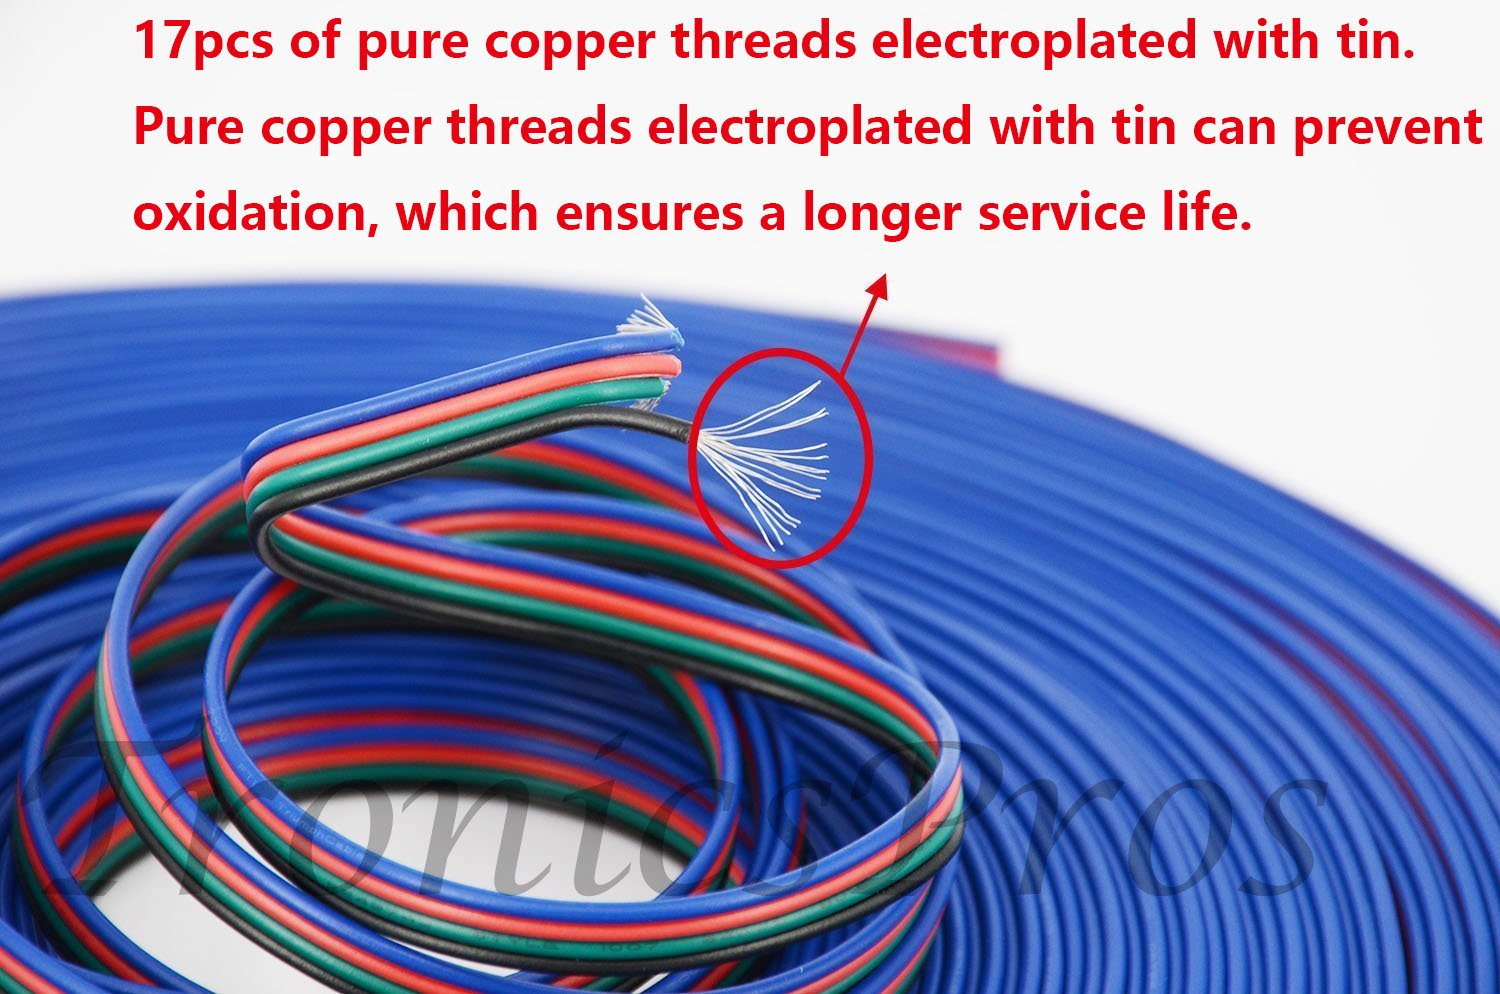 LitaElek 20m 2 Pin LED Strip Extension Cable Cord Connector Wire for SMD 3528 2835 5050 5630 Single Colour Flex LED Strip LED Tape LED Ribbon Flexible LED String LED Rope Light and Other DC12V Devices